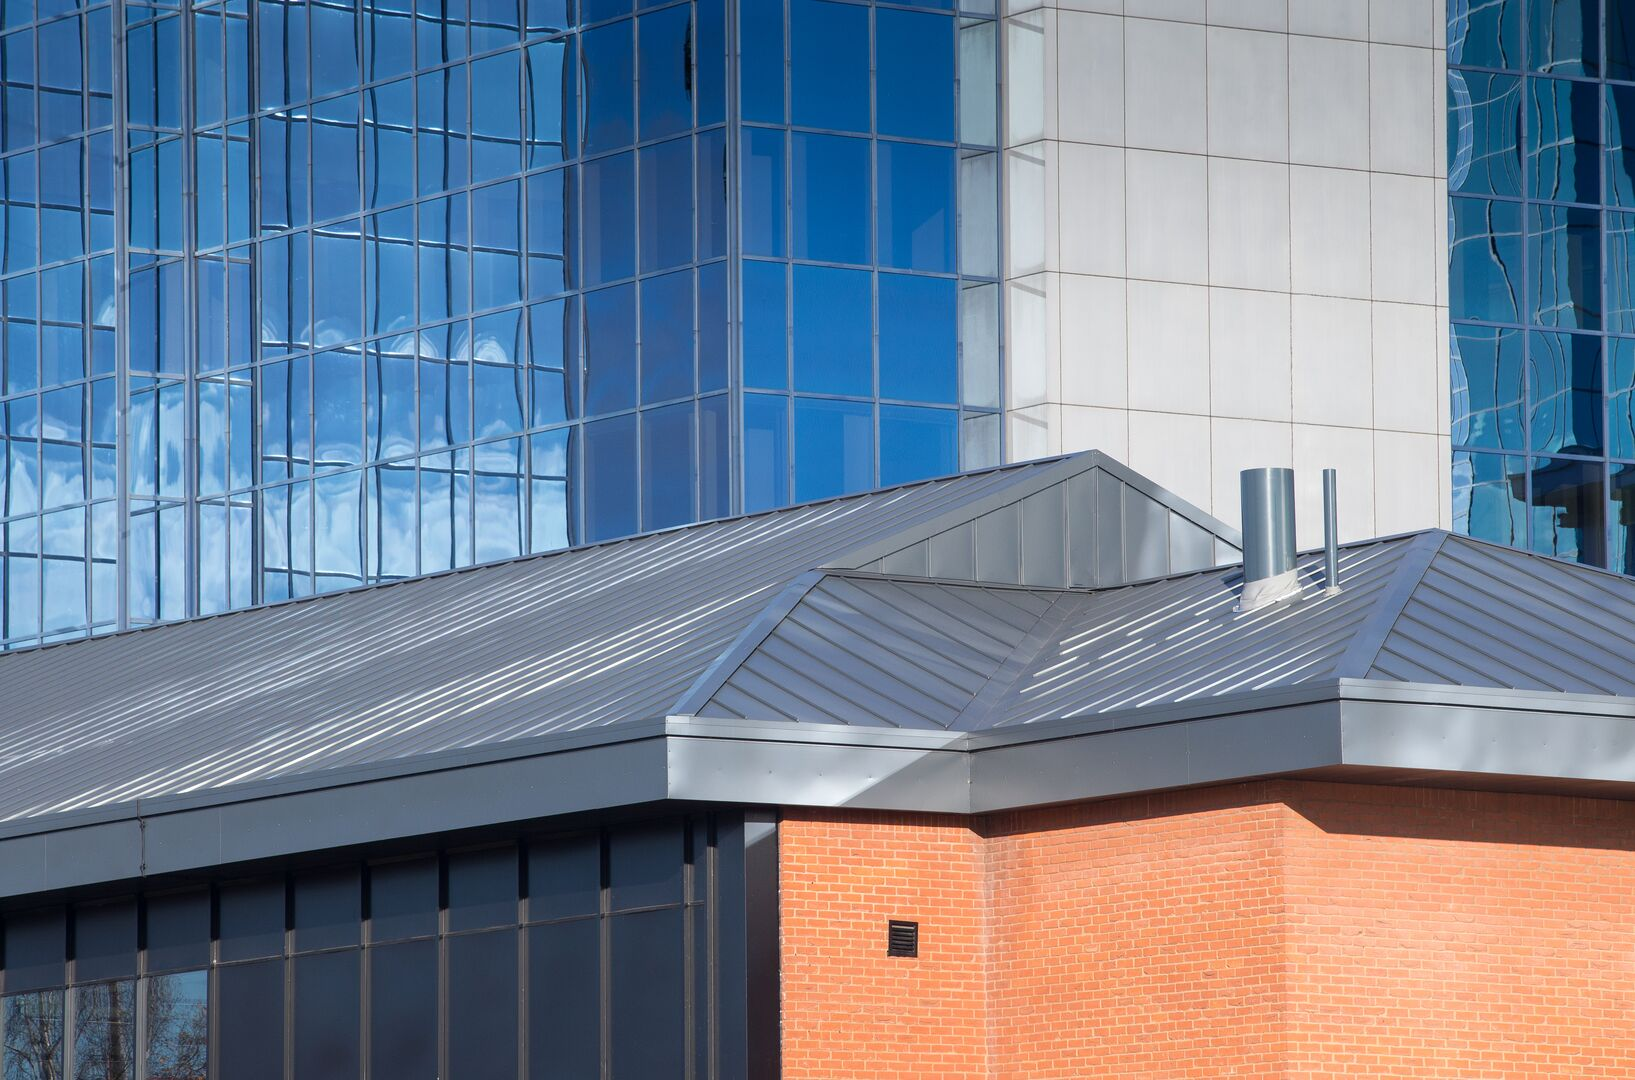 Construction accessories Tata Steel roof and wall fabrications and fascias